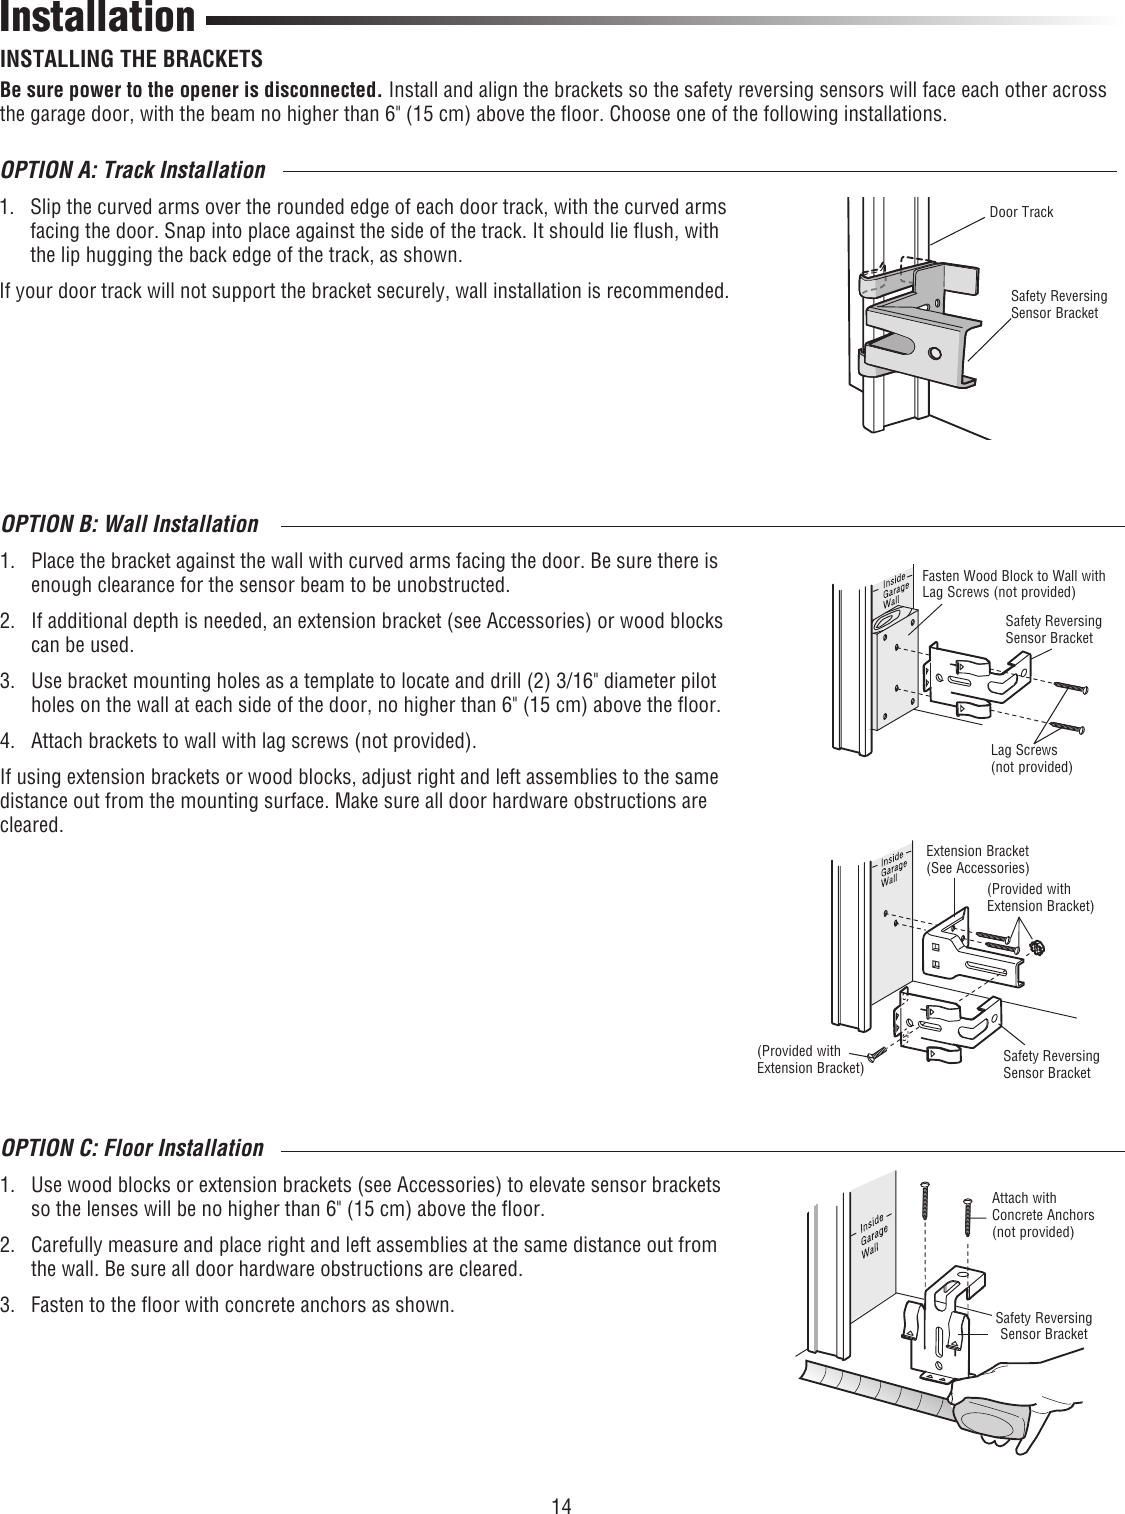 Liftmaster 8500 Owners Manual